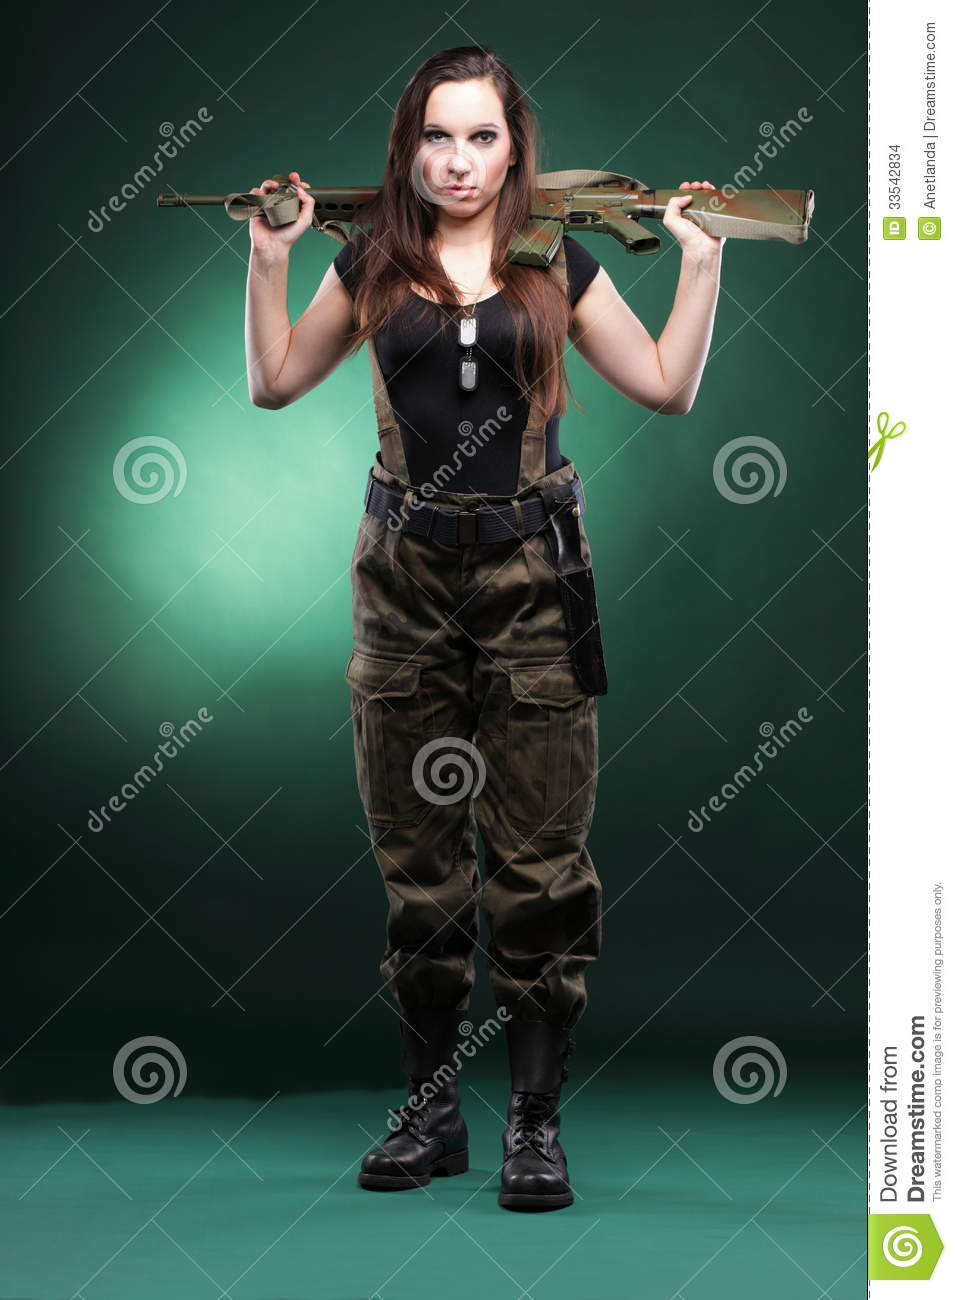 Military naked army girl holding a gun thought